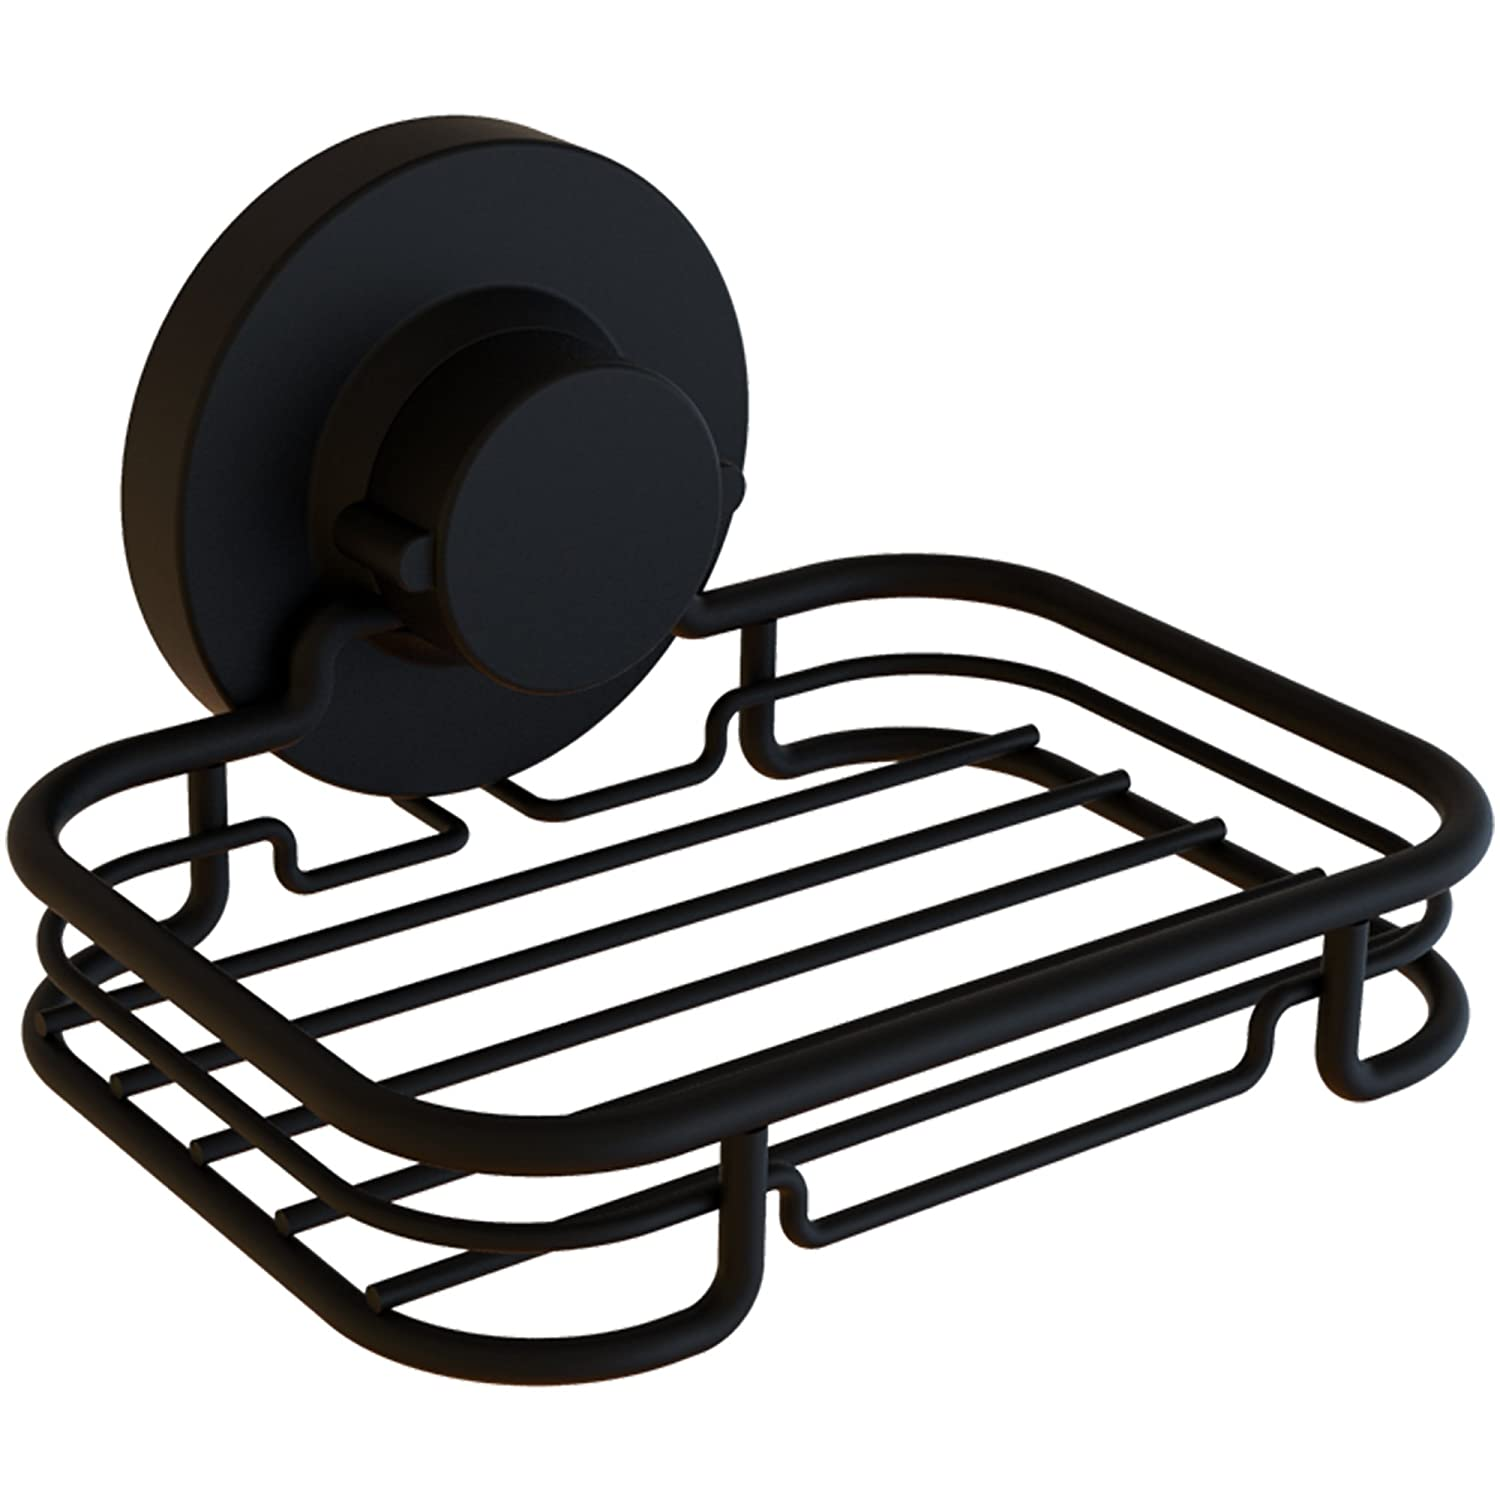 Gecko-Loc Rustproof Black Vacuum Suction Soap Dish Holder for Shower or Bath, Sponge Holder Sink Organizer - Easy Installation and No Drilling Stainless Steel Pinnacle Brands SHB-001